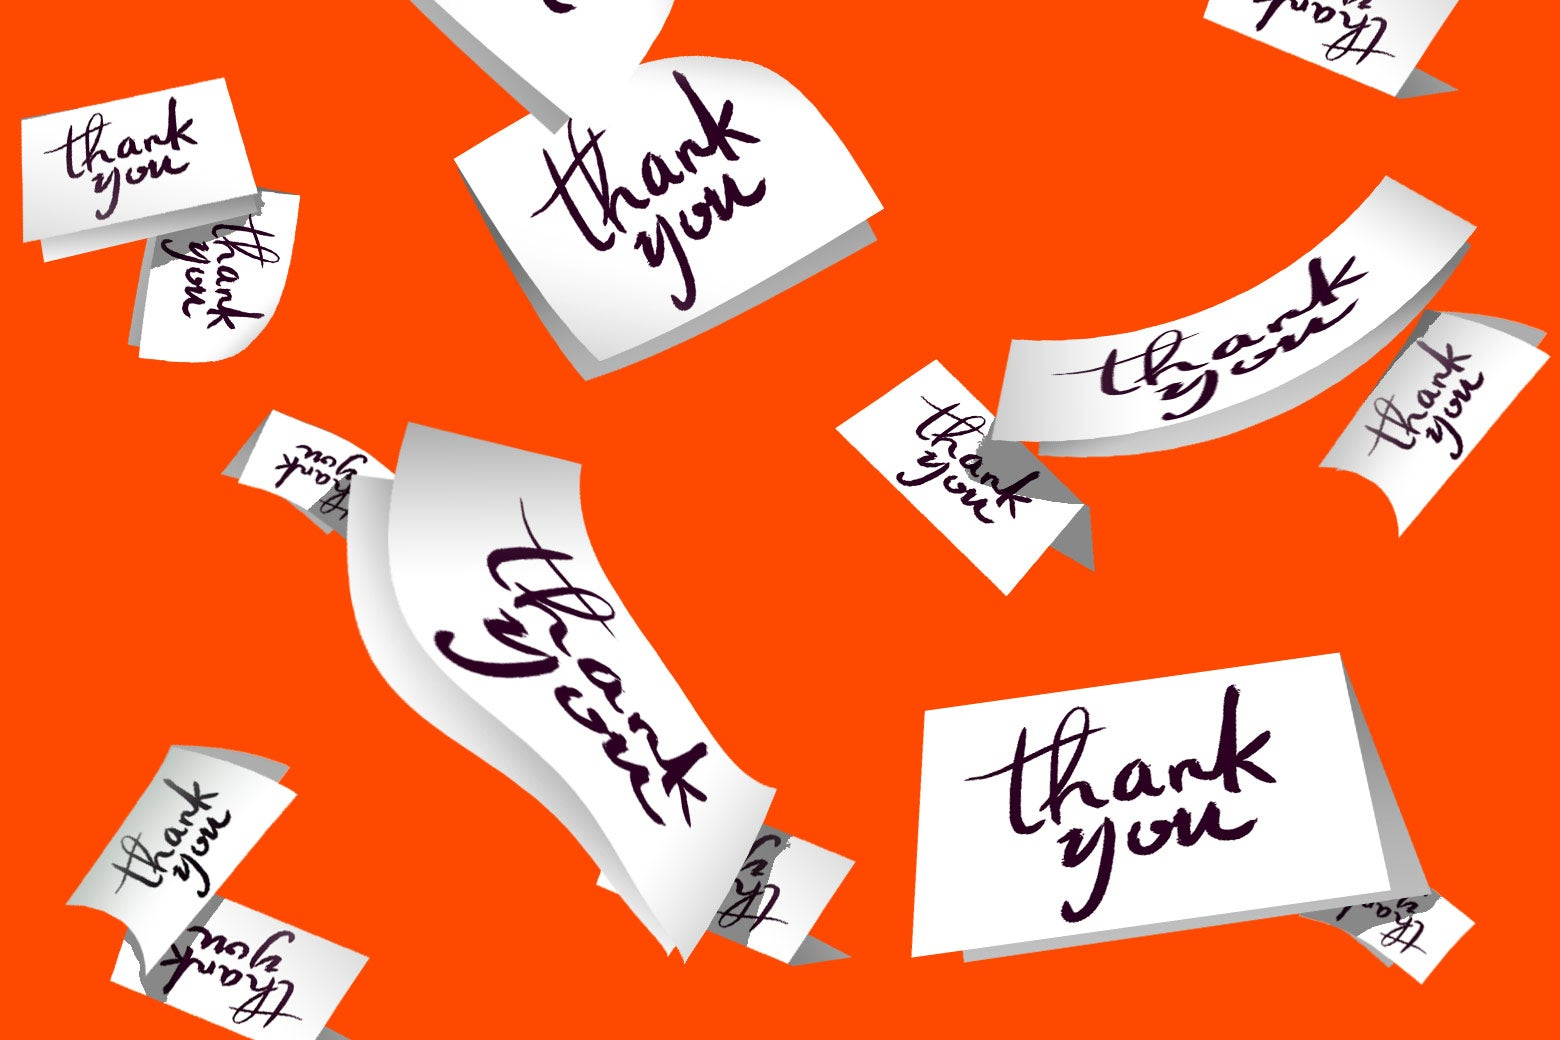 Thank you notes flying through the air.